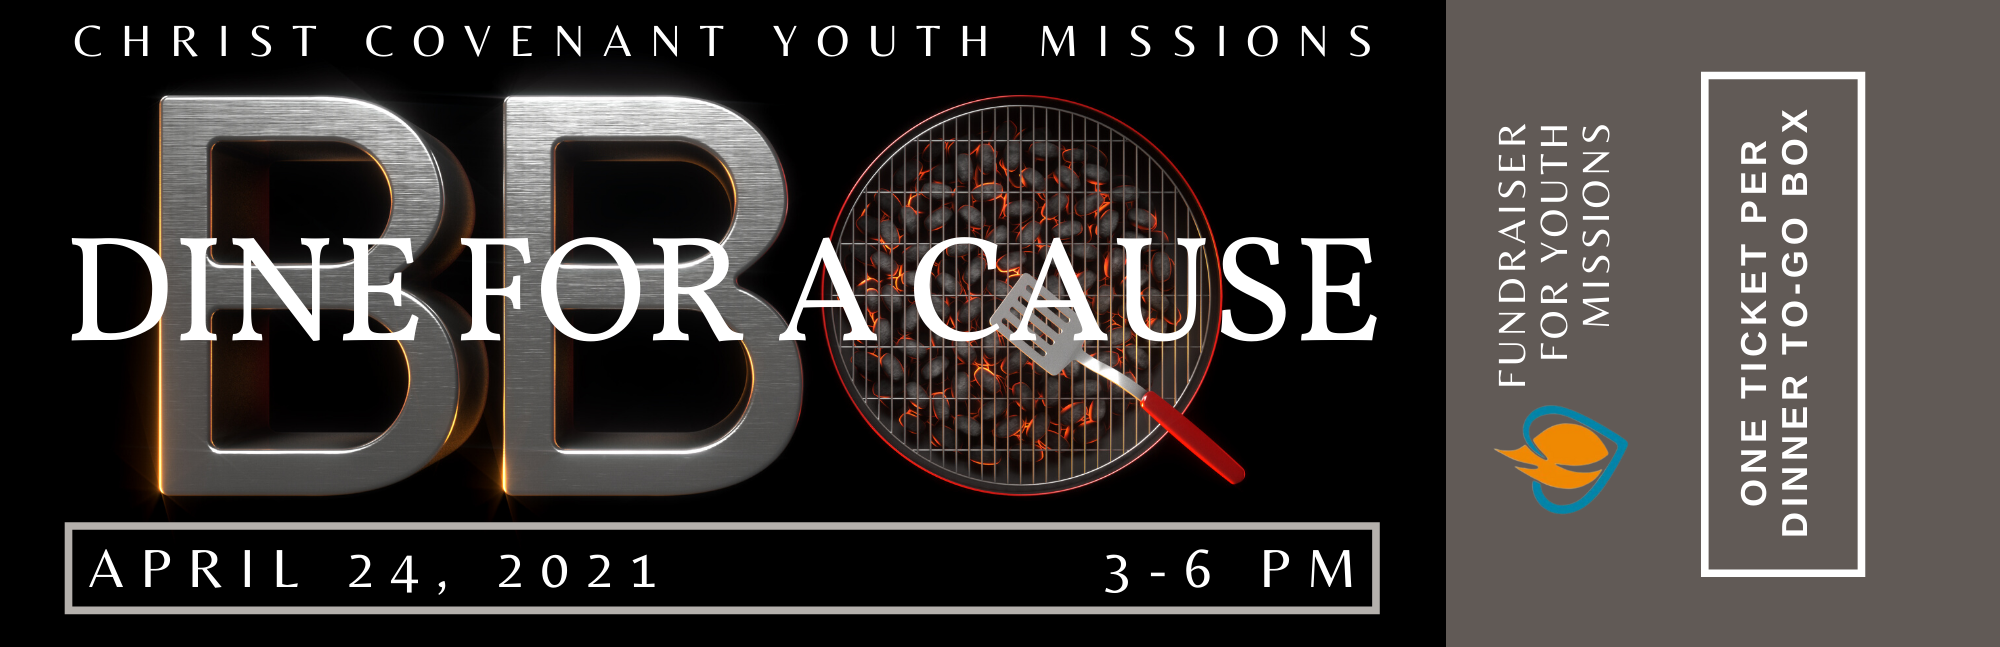 1youth fundraiser